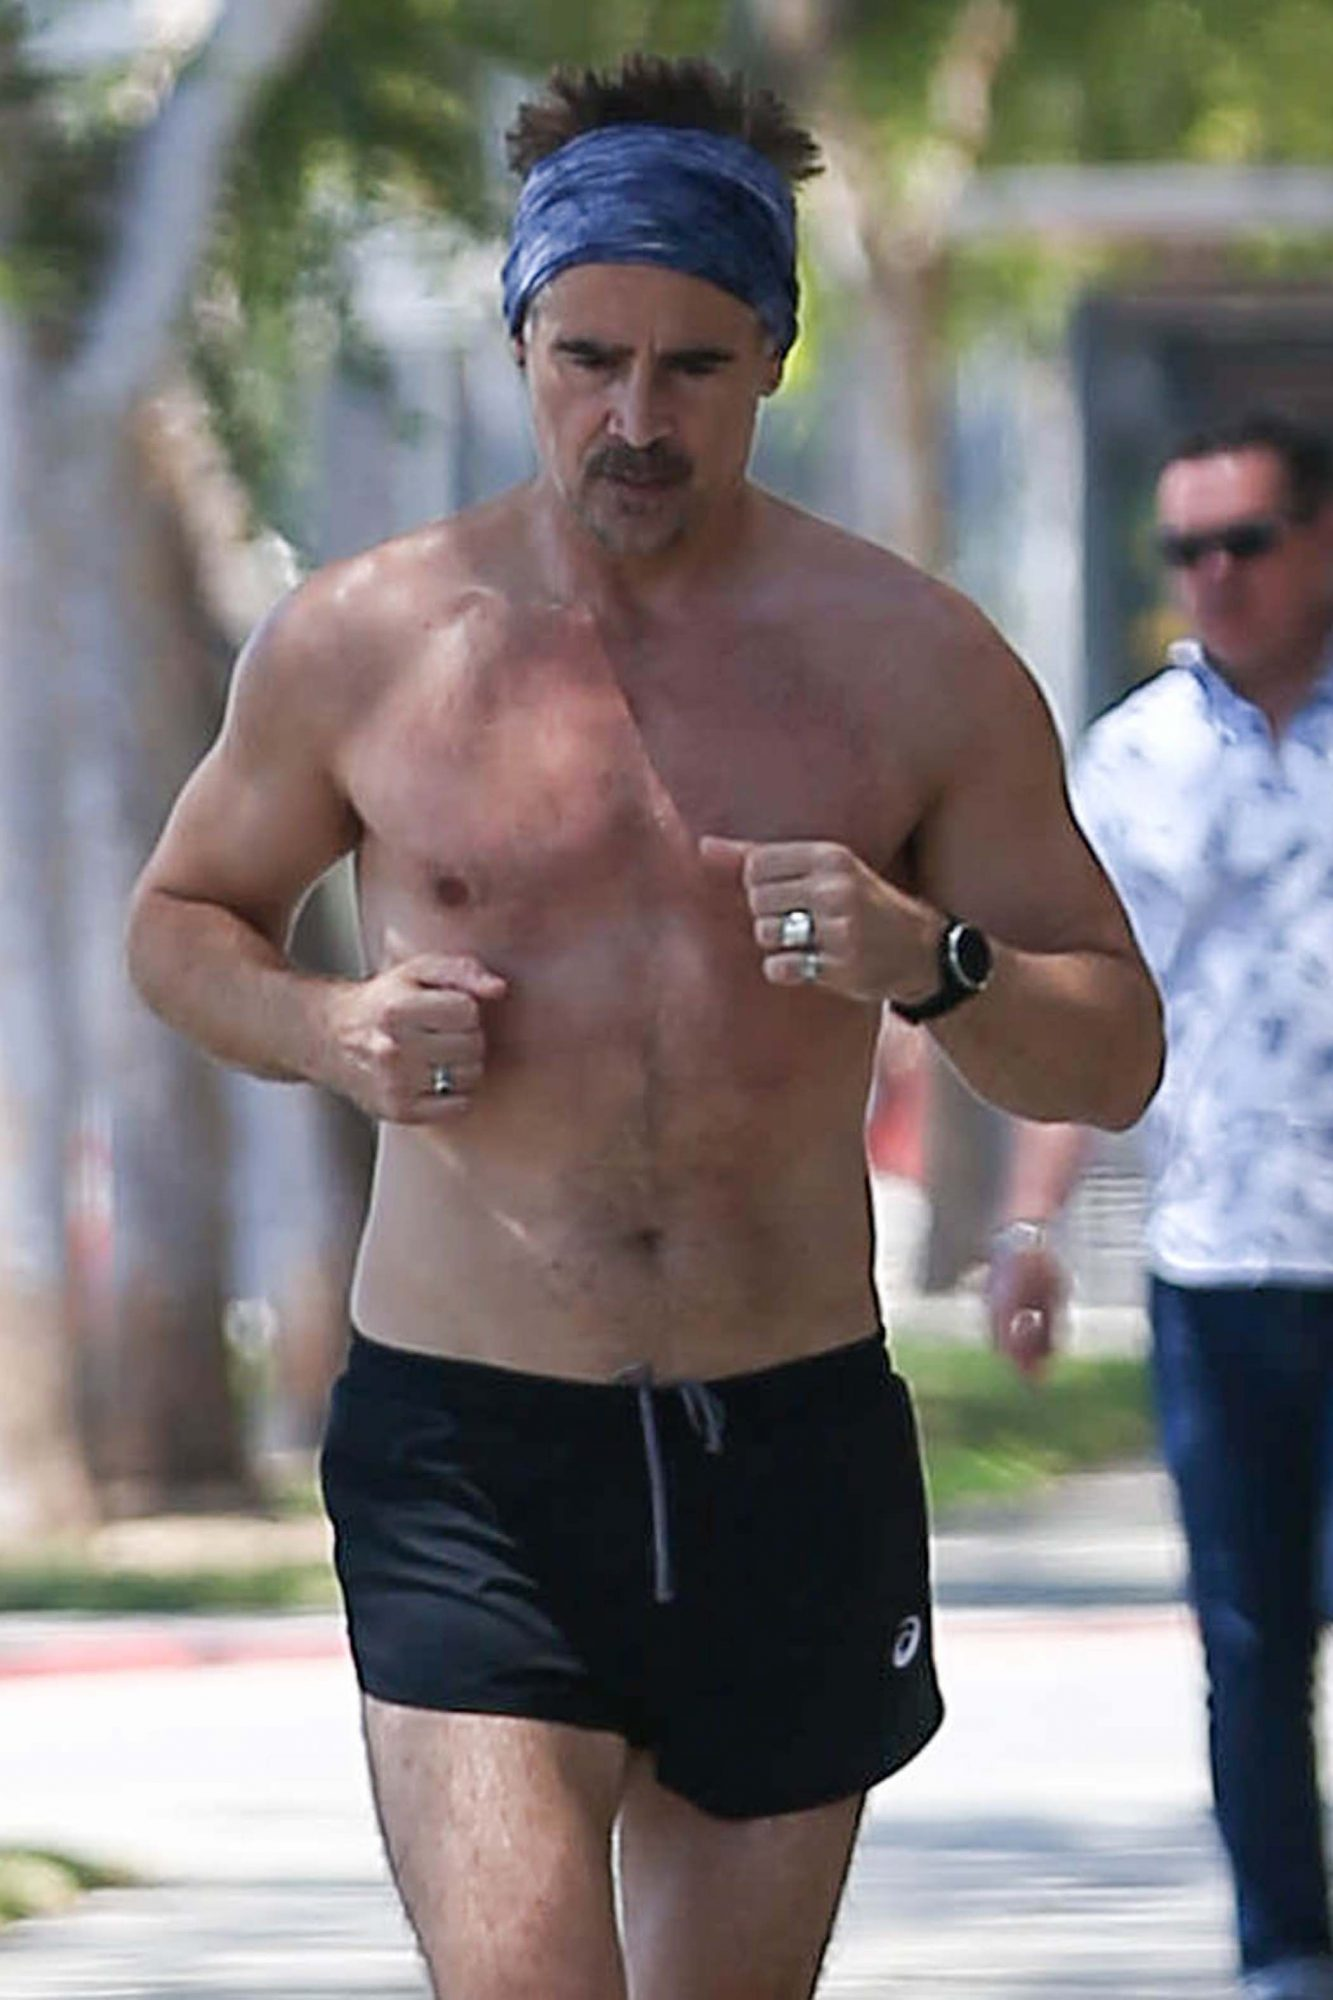 Colin Farrell Shows Off his Abs & Toned Arms During a Shirtless Run in LA